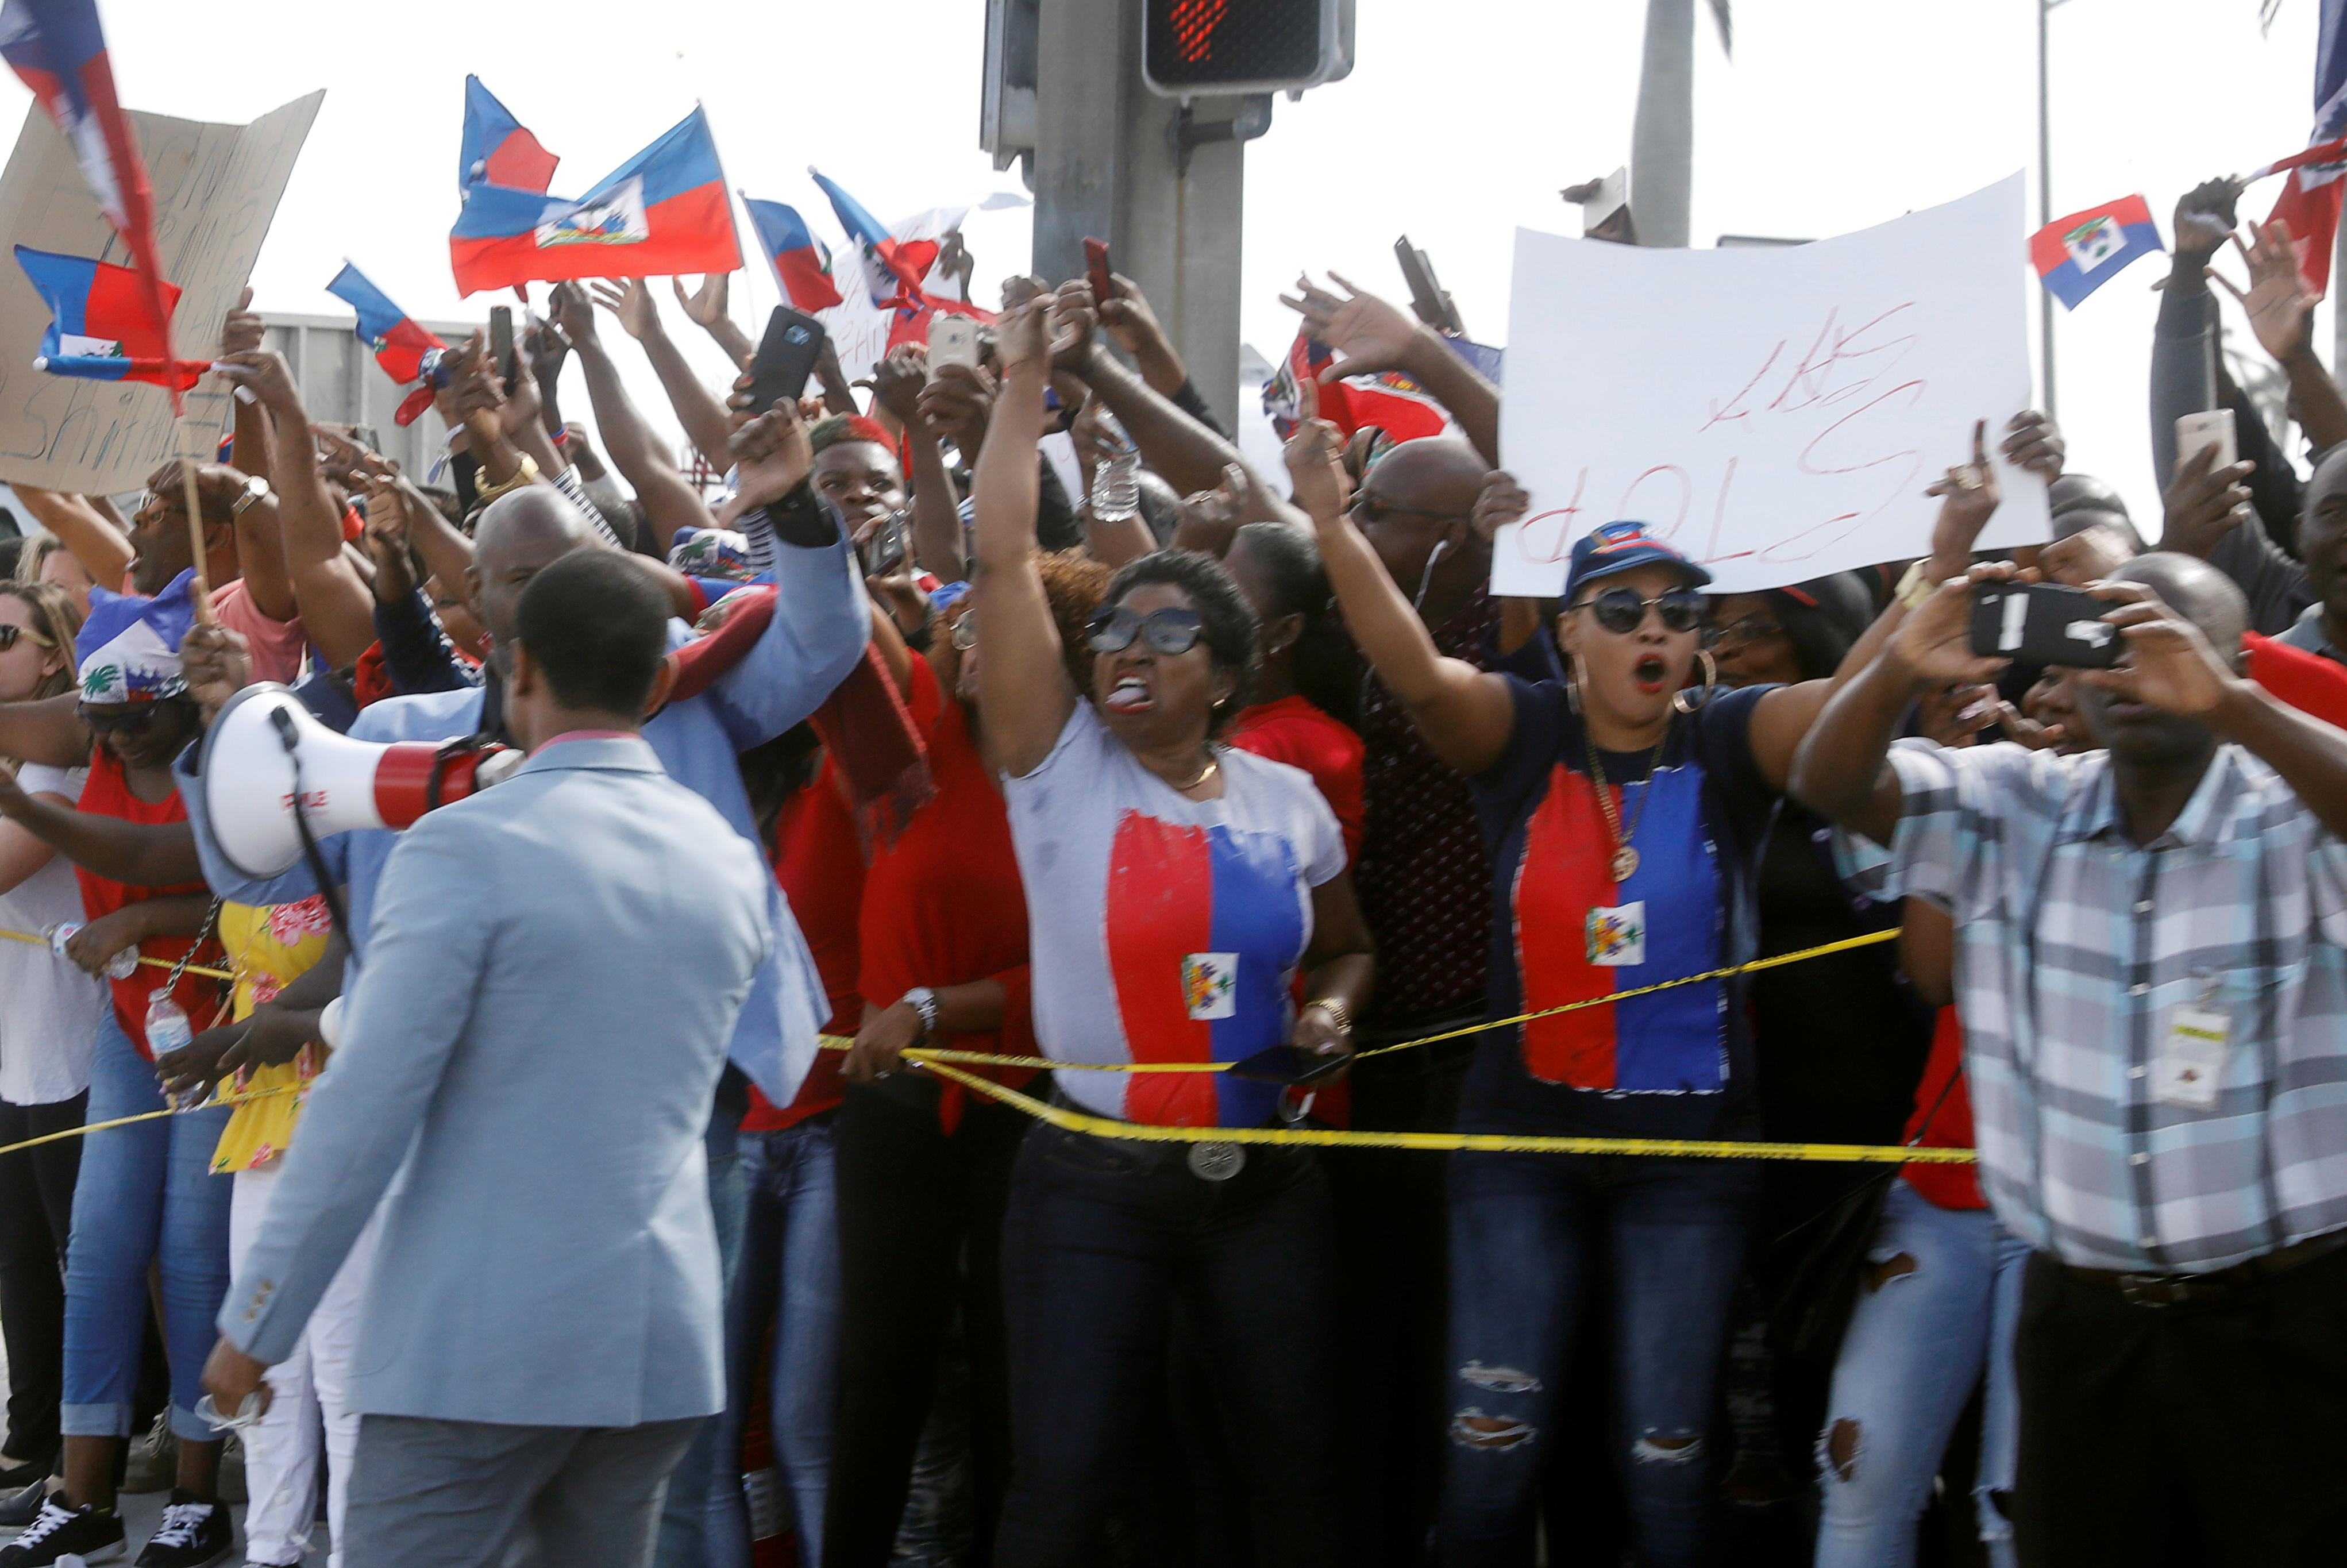 Demonstrators hold up Haitian flags and shout as the motorcade of U.S. President Donald Trump passes in West Palm Beach, Florida, U.S., January 15, 2018.  Kevin Lamarque